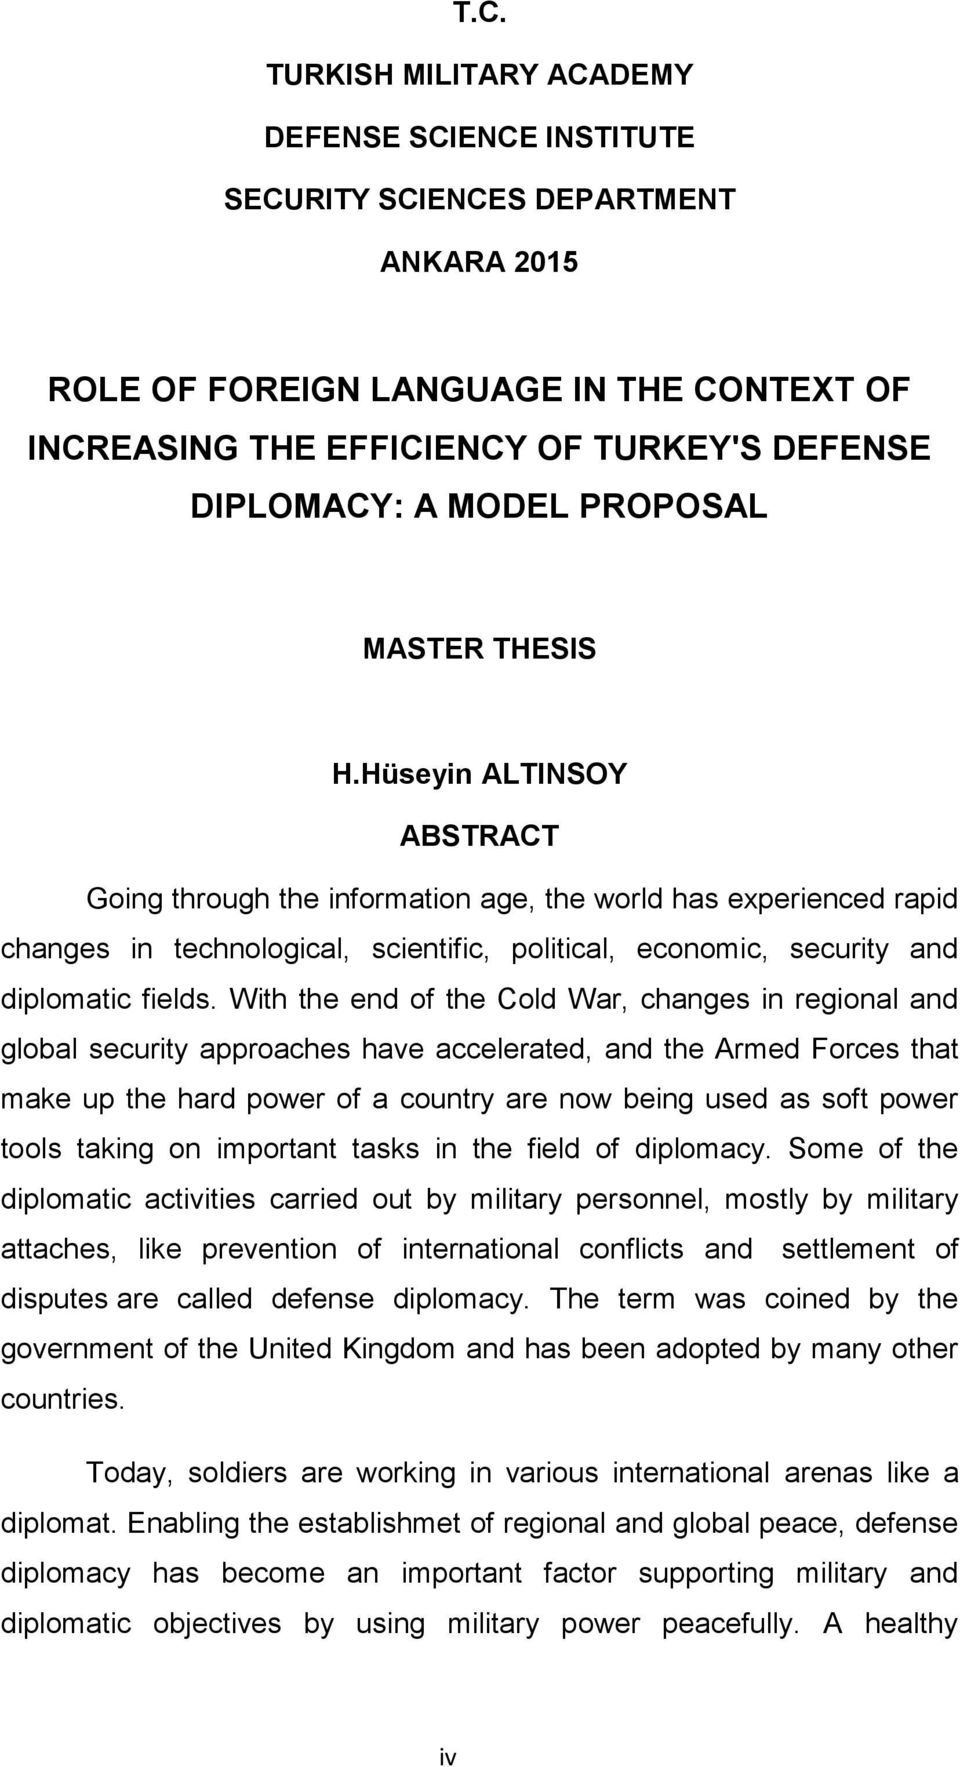 Hüseyin ALTINSOY ABSTRACT Going through the information age, the world has experienced rapid changes in technological, scientific, political, economic, security and diplomatic fields.